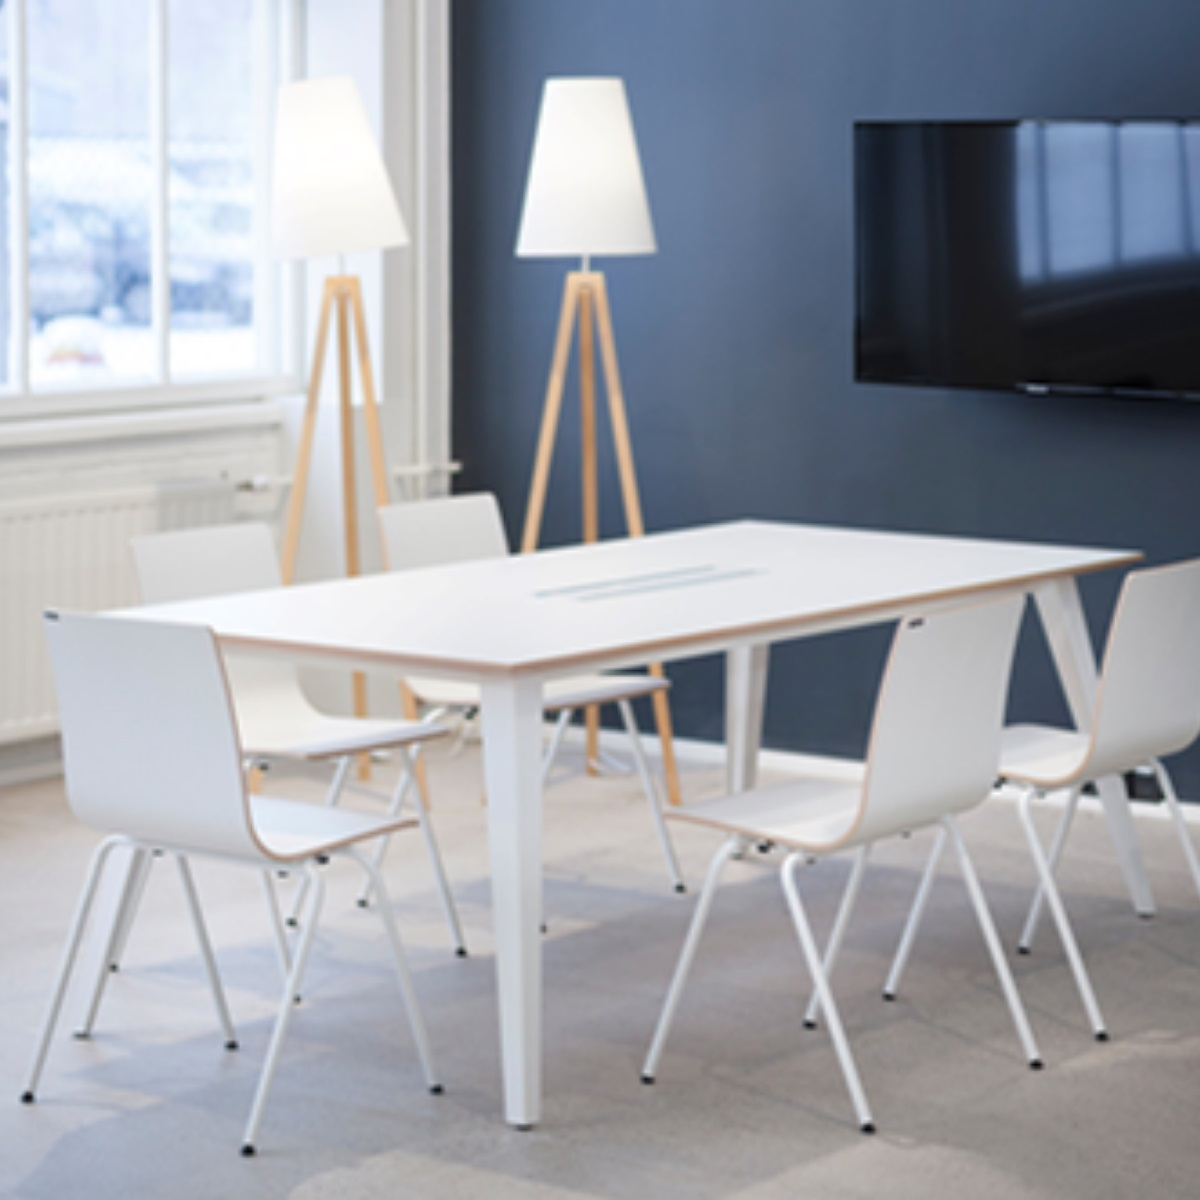 A rectangular table and 5 chairs made from antimicrobial material